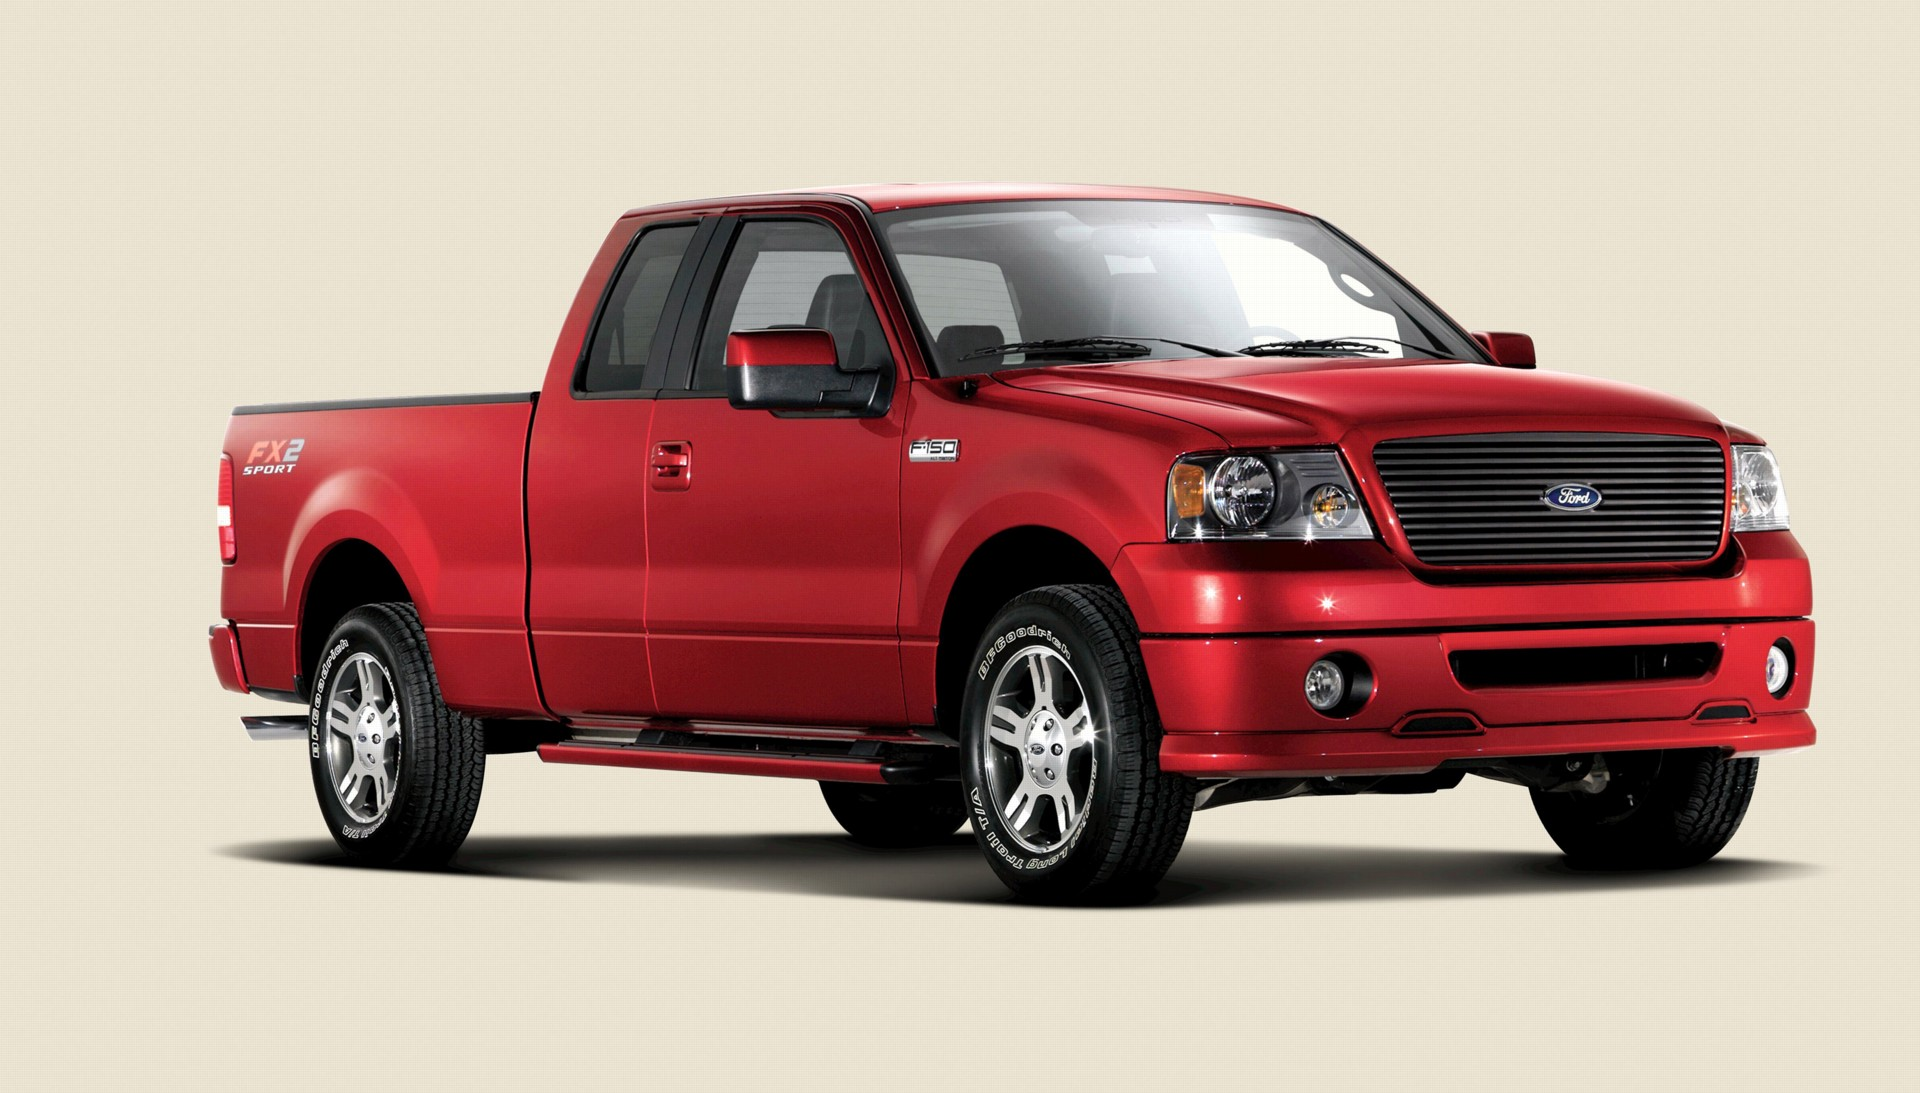 2007 ford f 150 history pictures value auction sales research and news. Black Bedroom Furniture Sets. Home Design Ideas